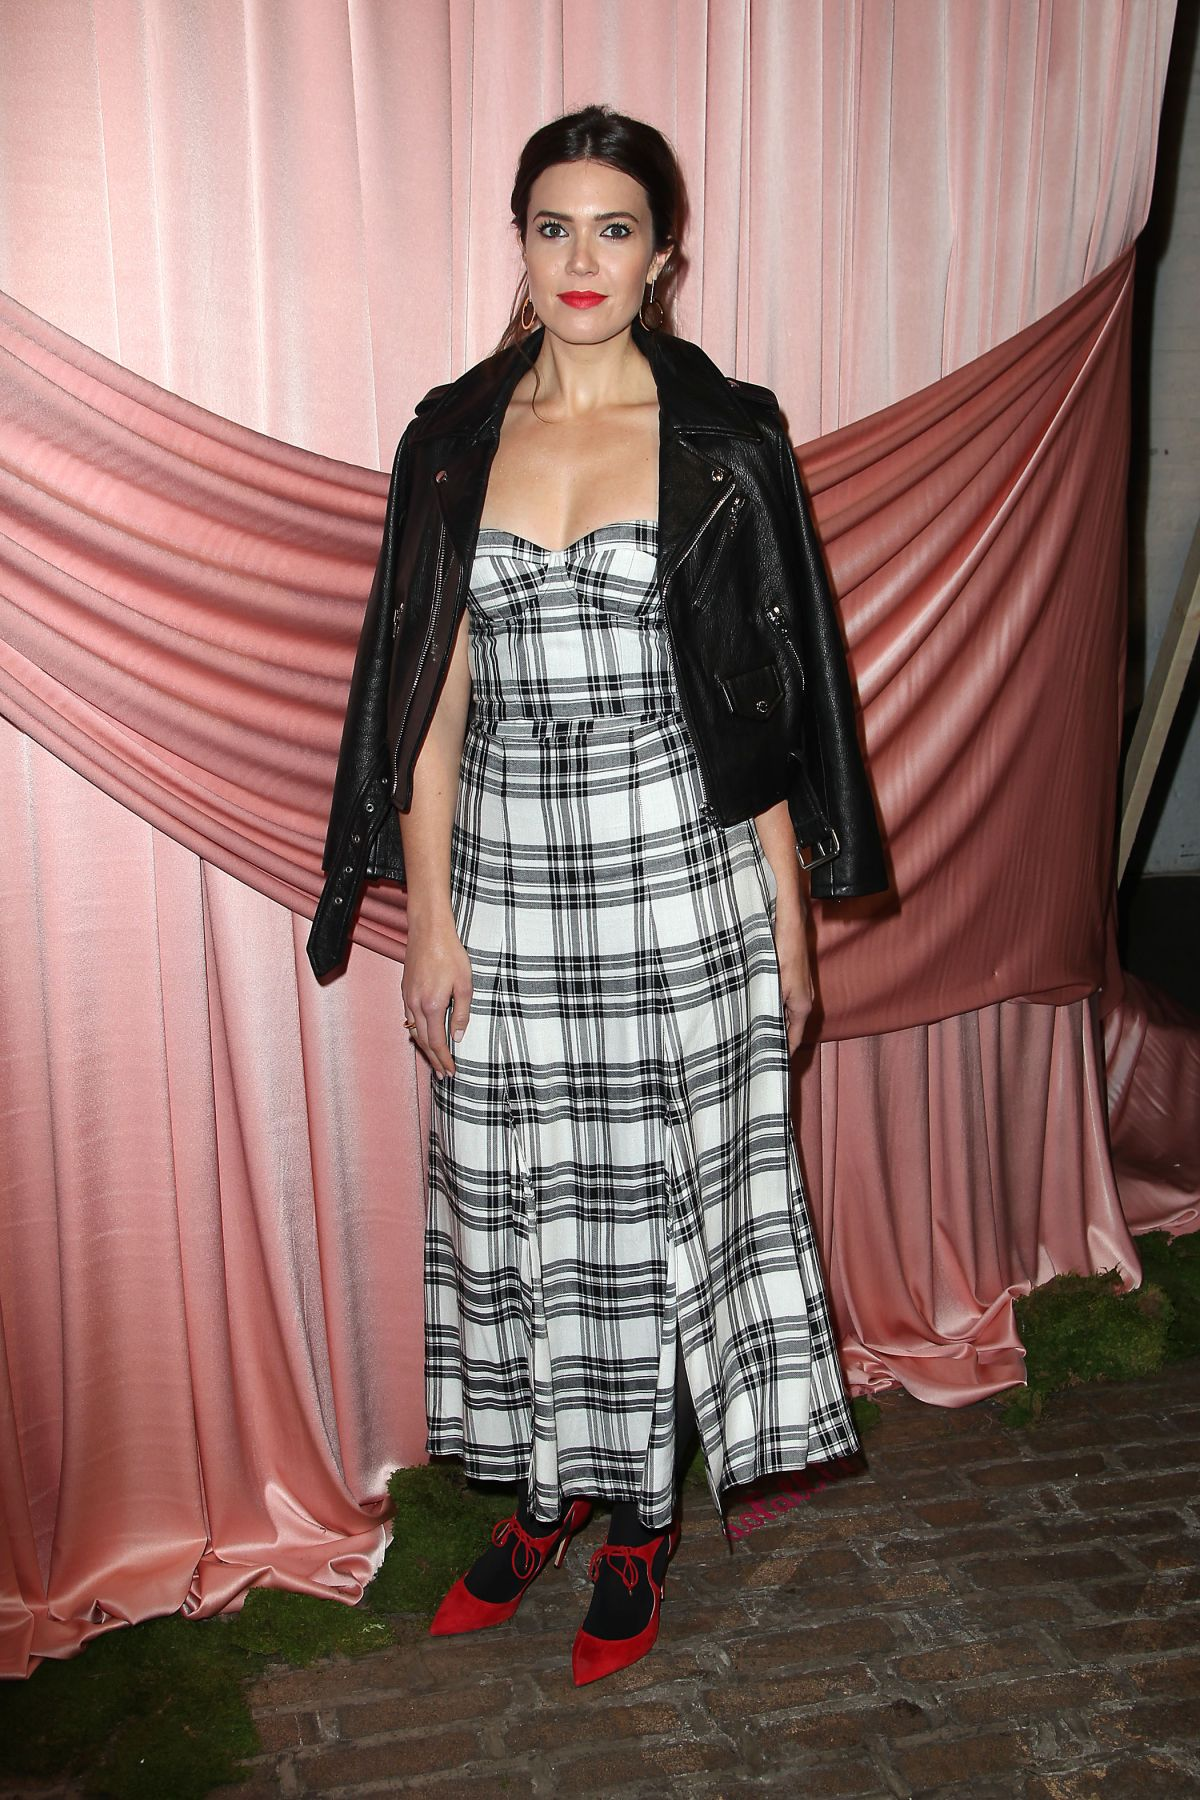 MANDY MOORE at Aice+Olivia by Stacey Bendet Presentation in New York 02/14/2017   mandy-moore-at-aice-olivia-by-stacey-bendet-presentation-in-new-york-02-14-2017_2